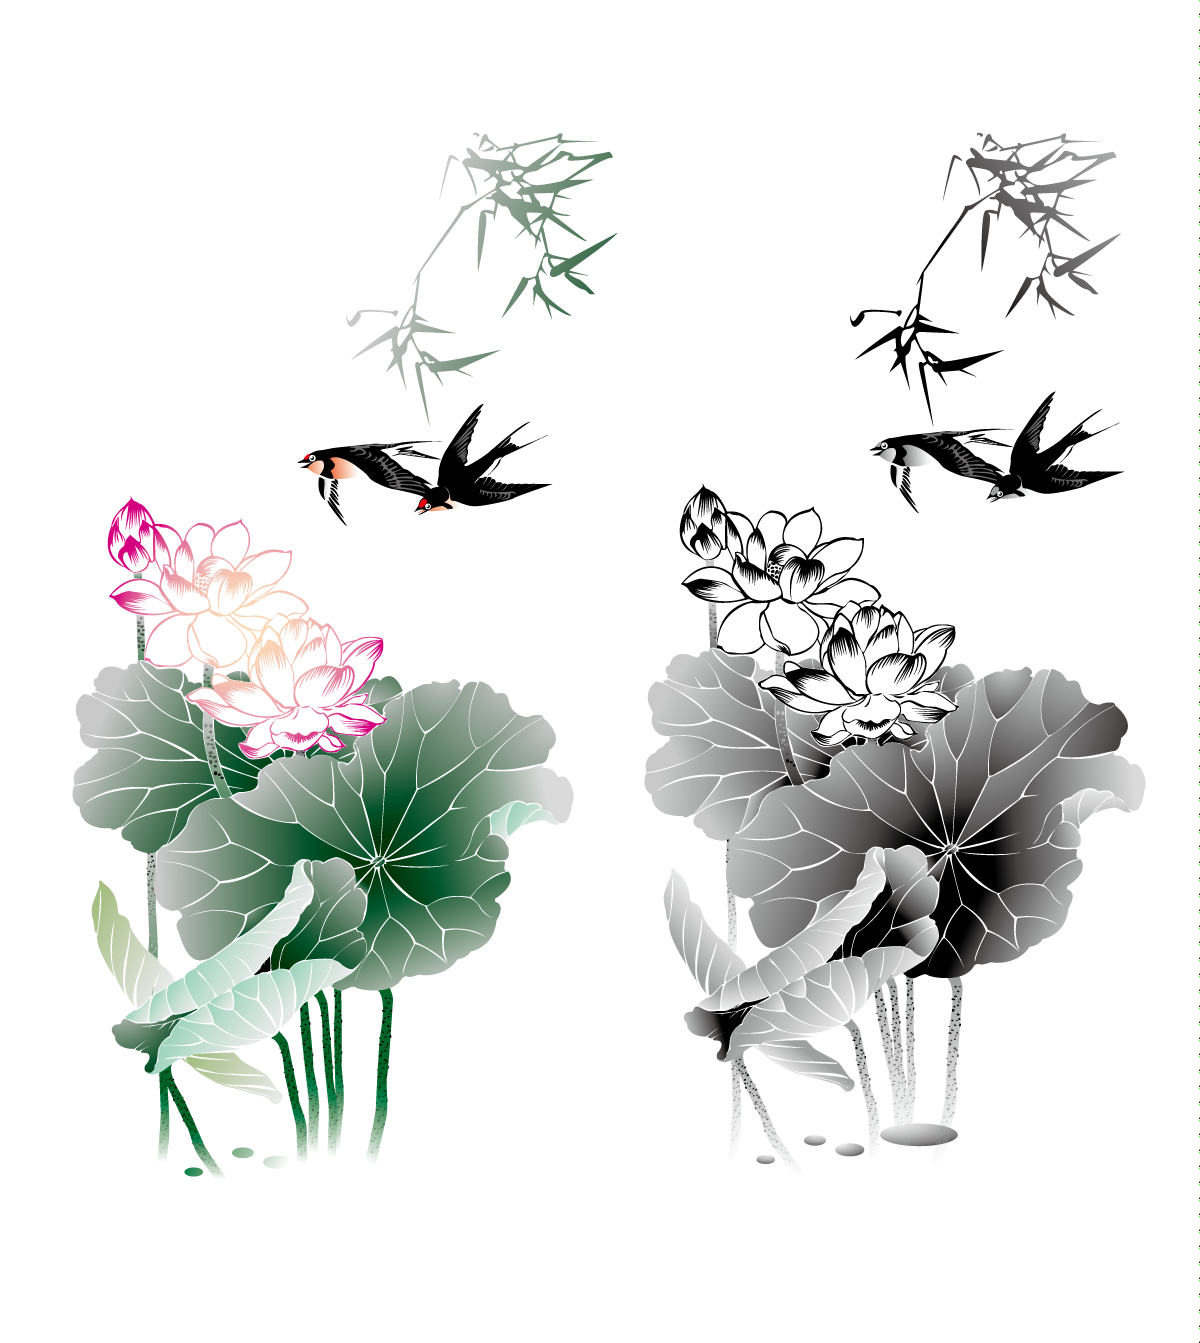 chinesefontdesign.com 2017 01 26 19 17 00 The Chinese ink painting lotus vector material   China Illustrations Vectors AI ESP